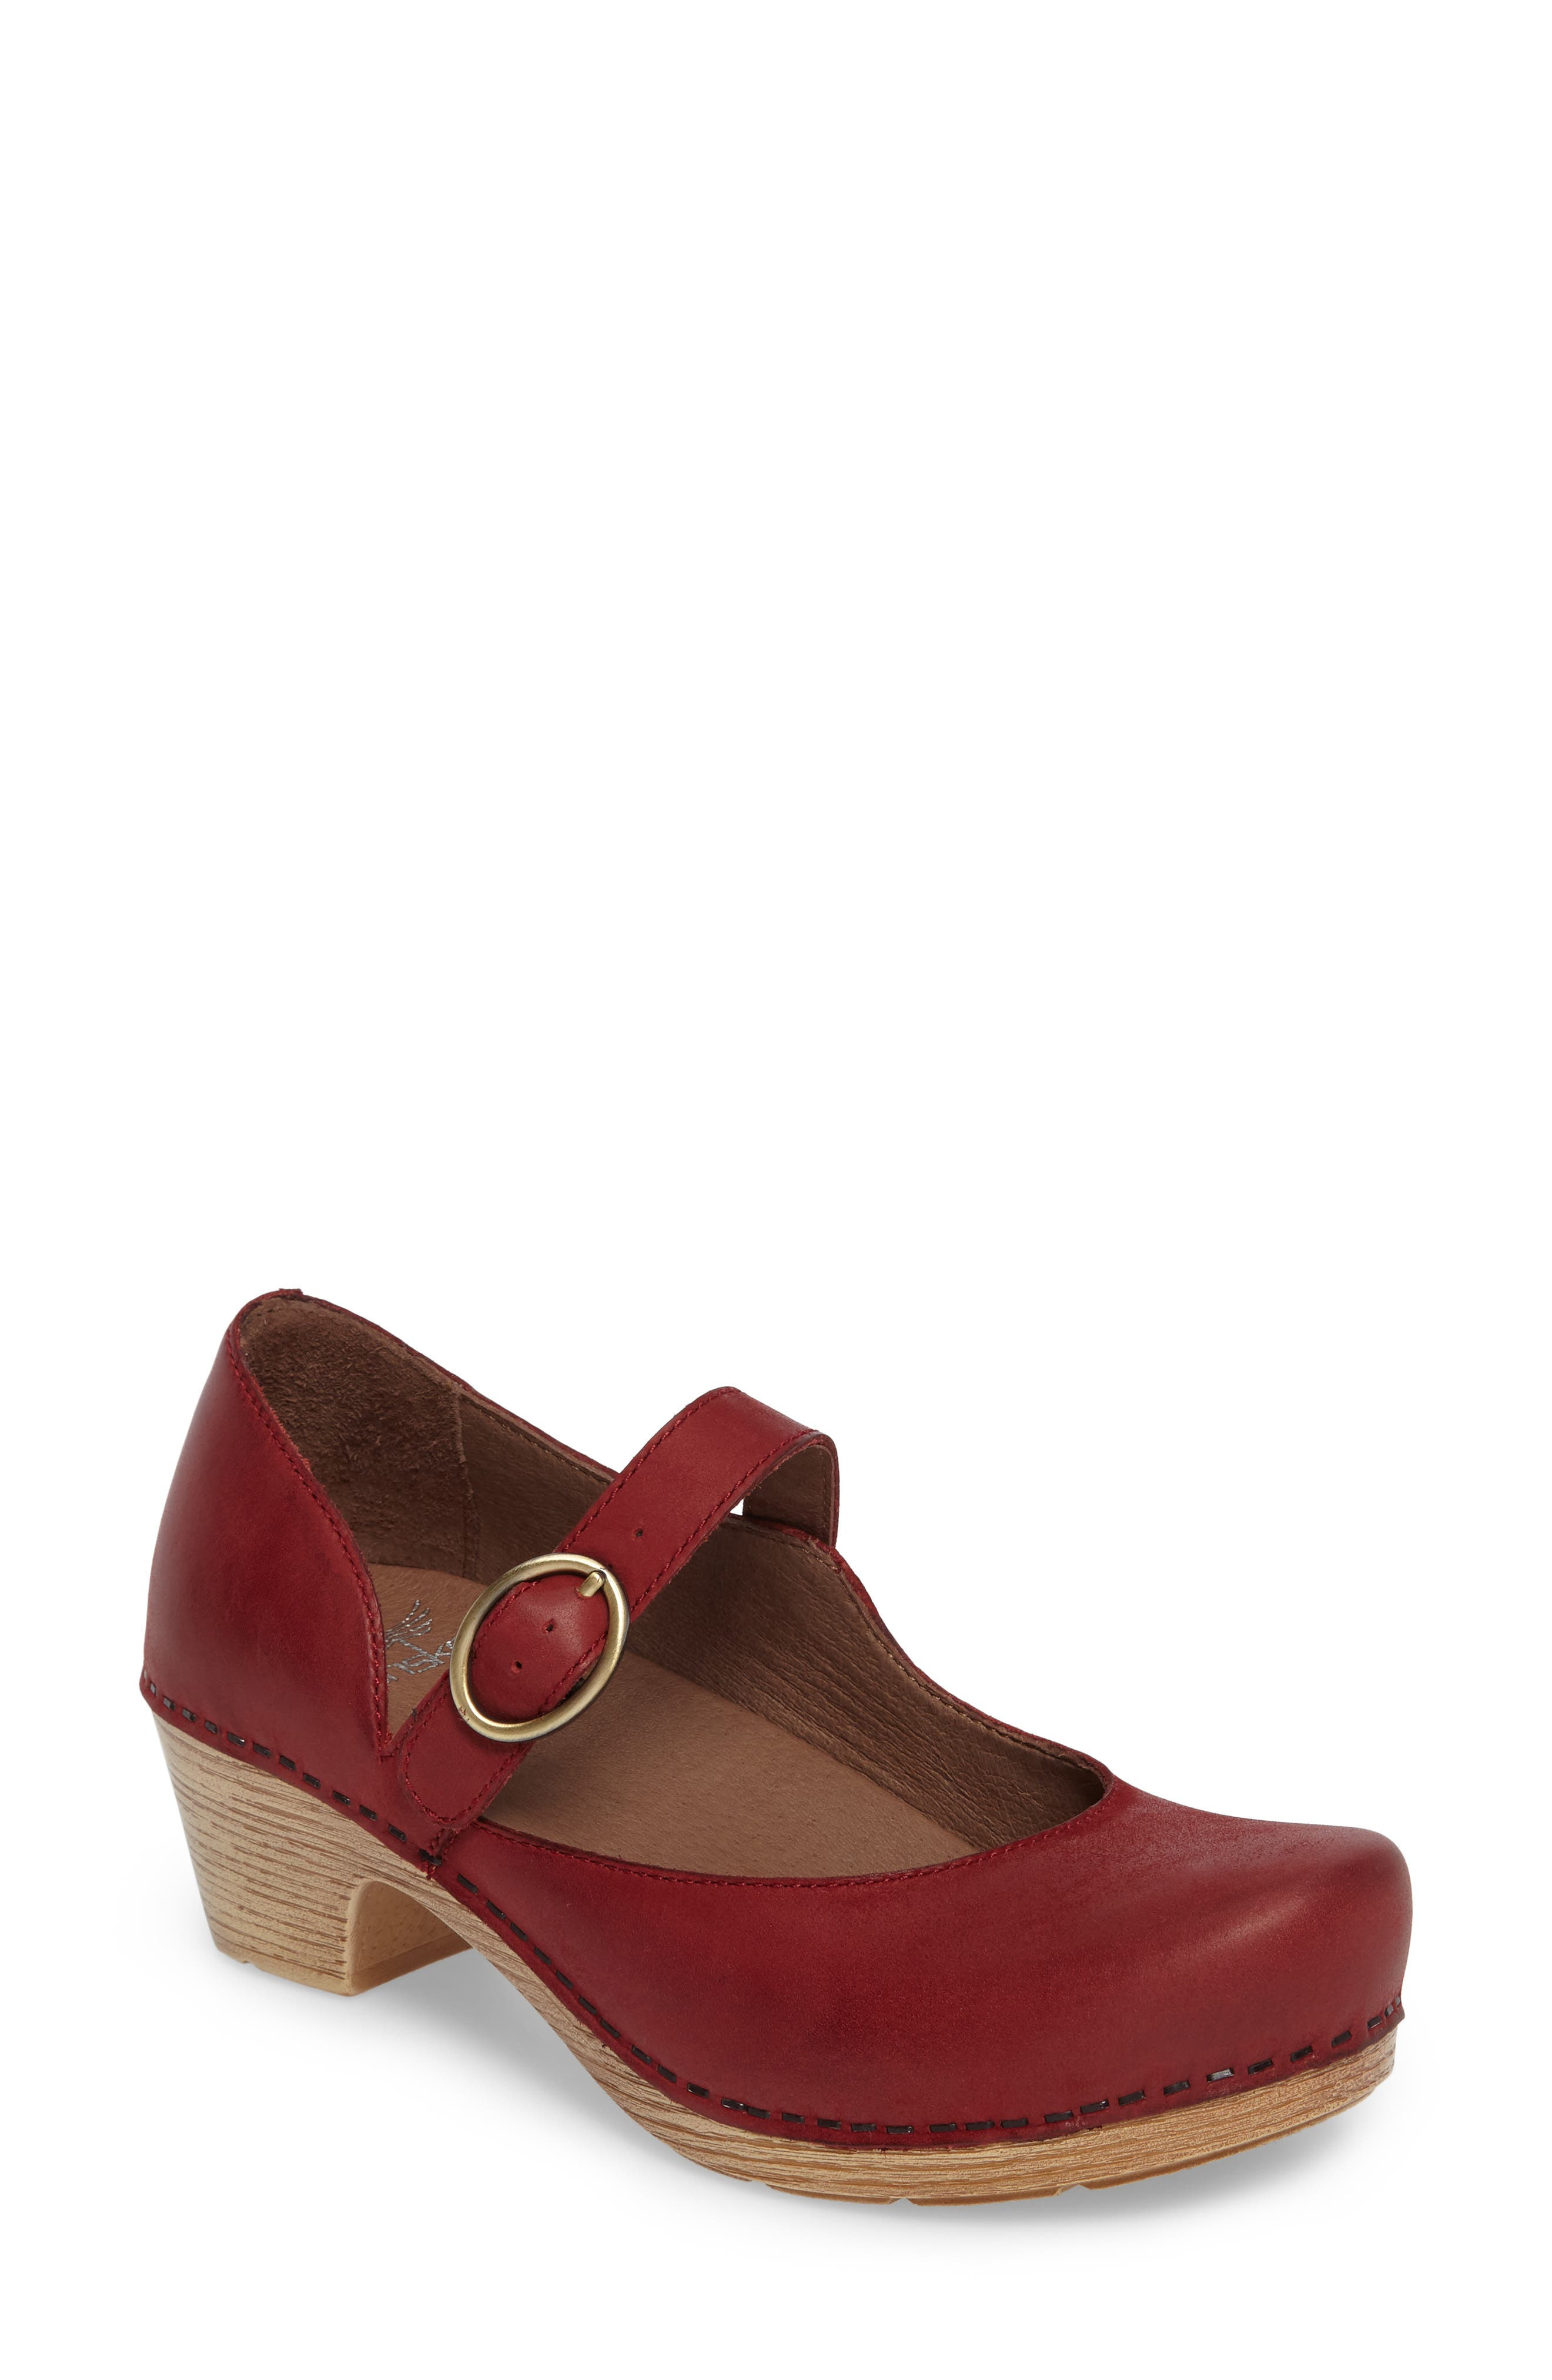 Missy Mary Jane Pump,                         Main,                         color, Red Leather